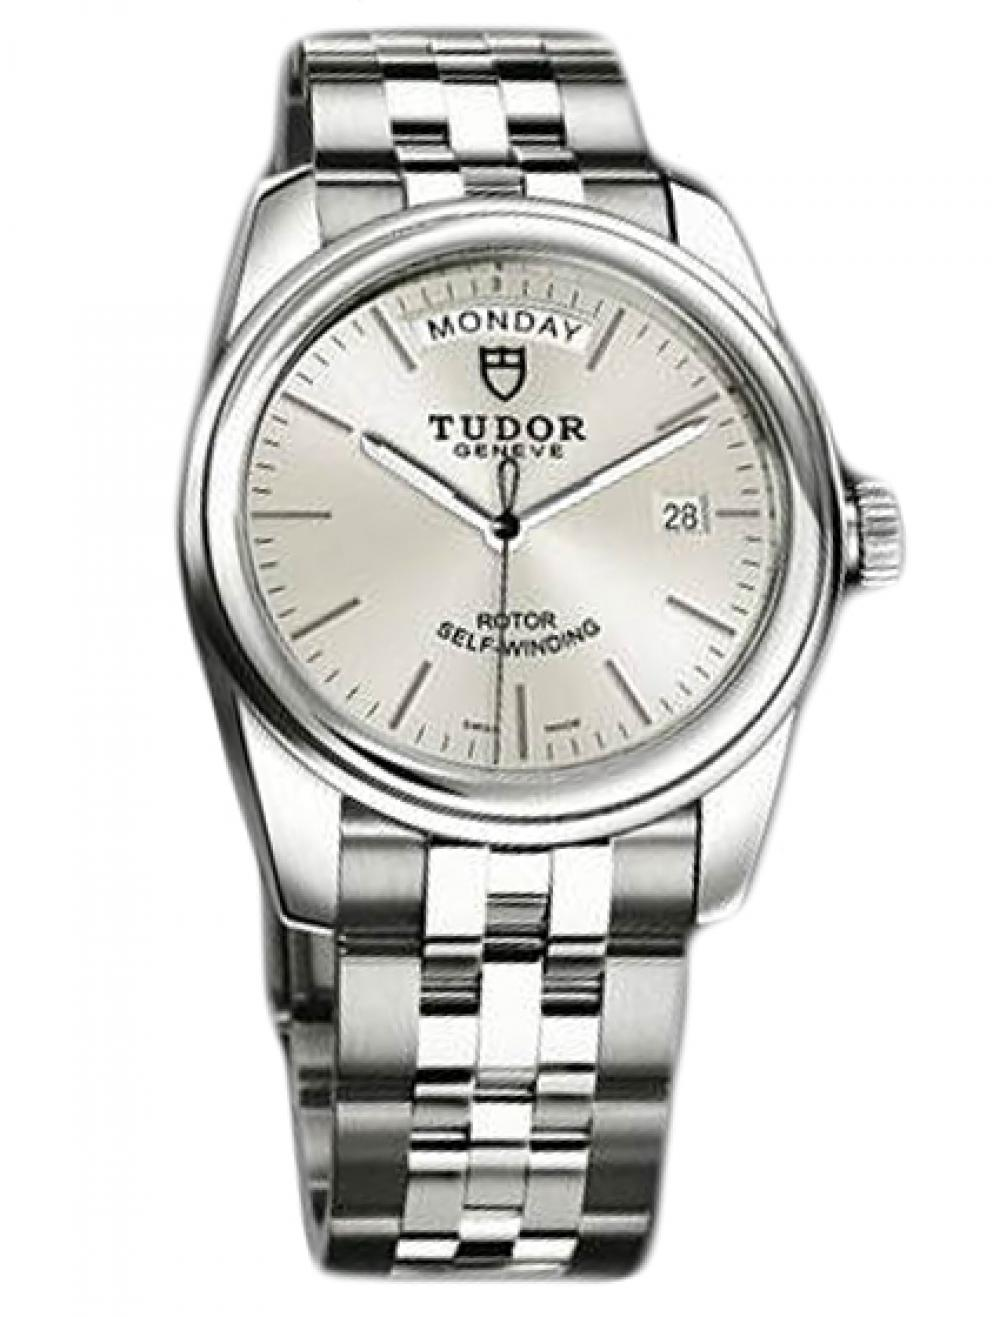 TUDOR GLAMOUR DAY-DATE 39 MM 56000-1